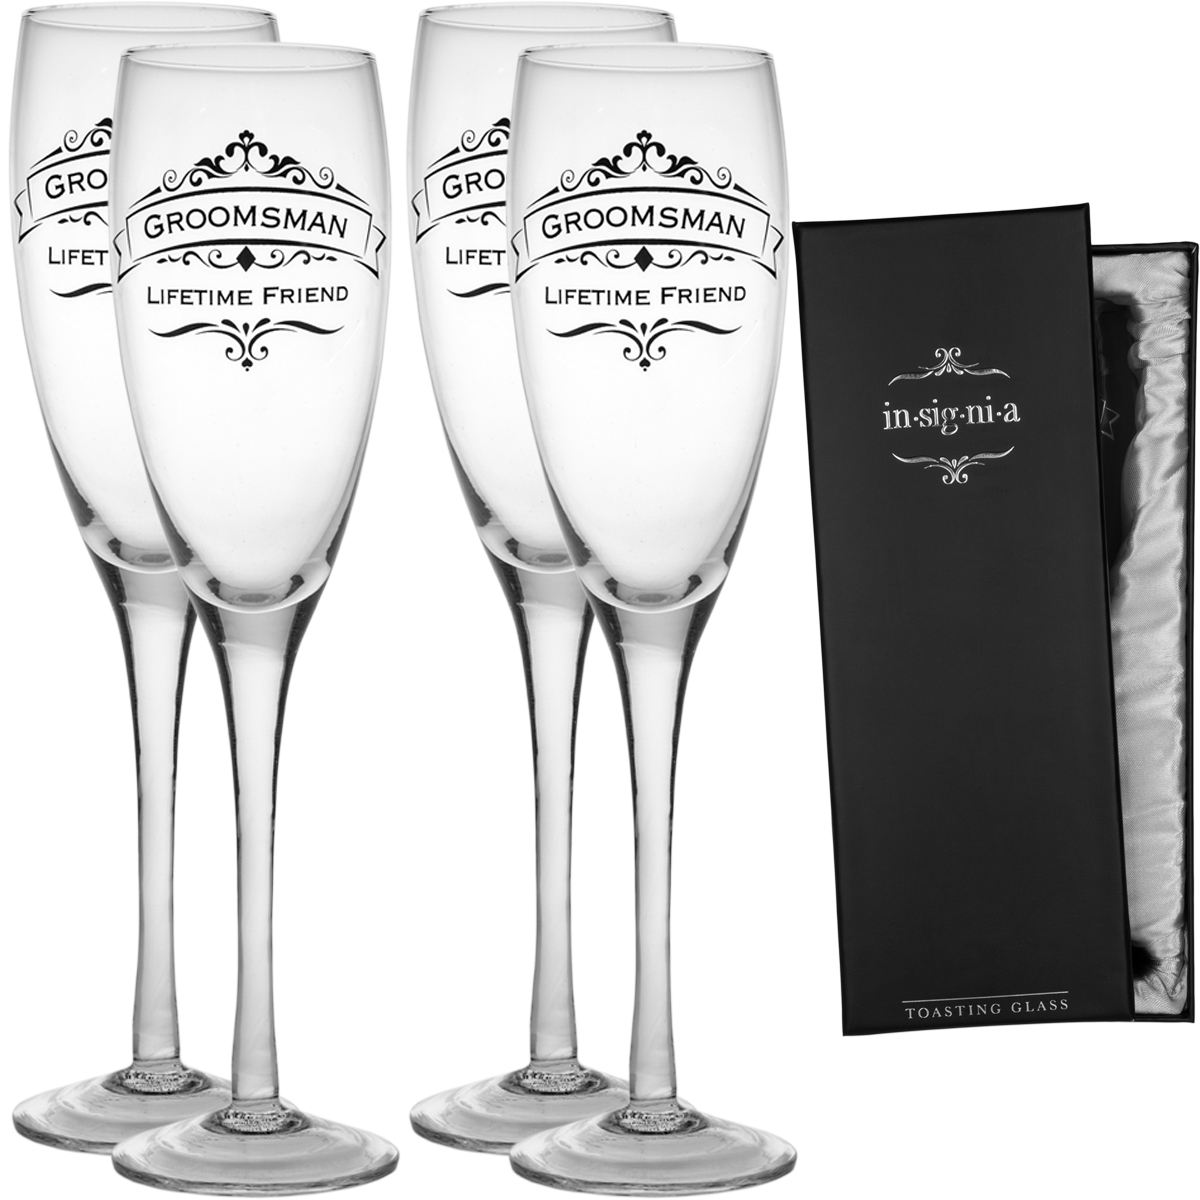 Champagne En Gros Enesco Set Of 4 Wedding Champagne Flute Toasting 11oz Glass Set Pack For Bridesmaids Groomsmen